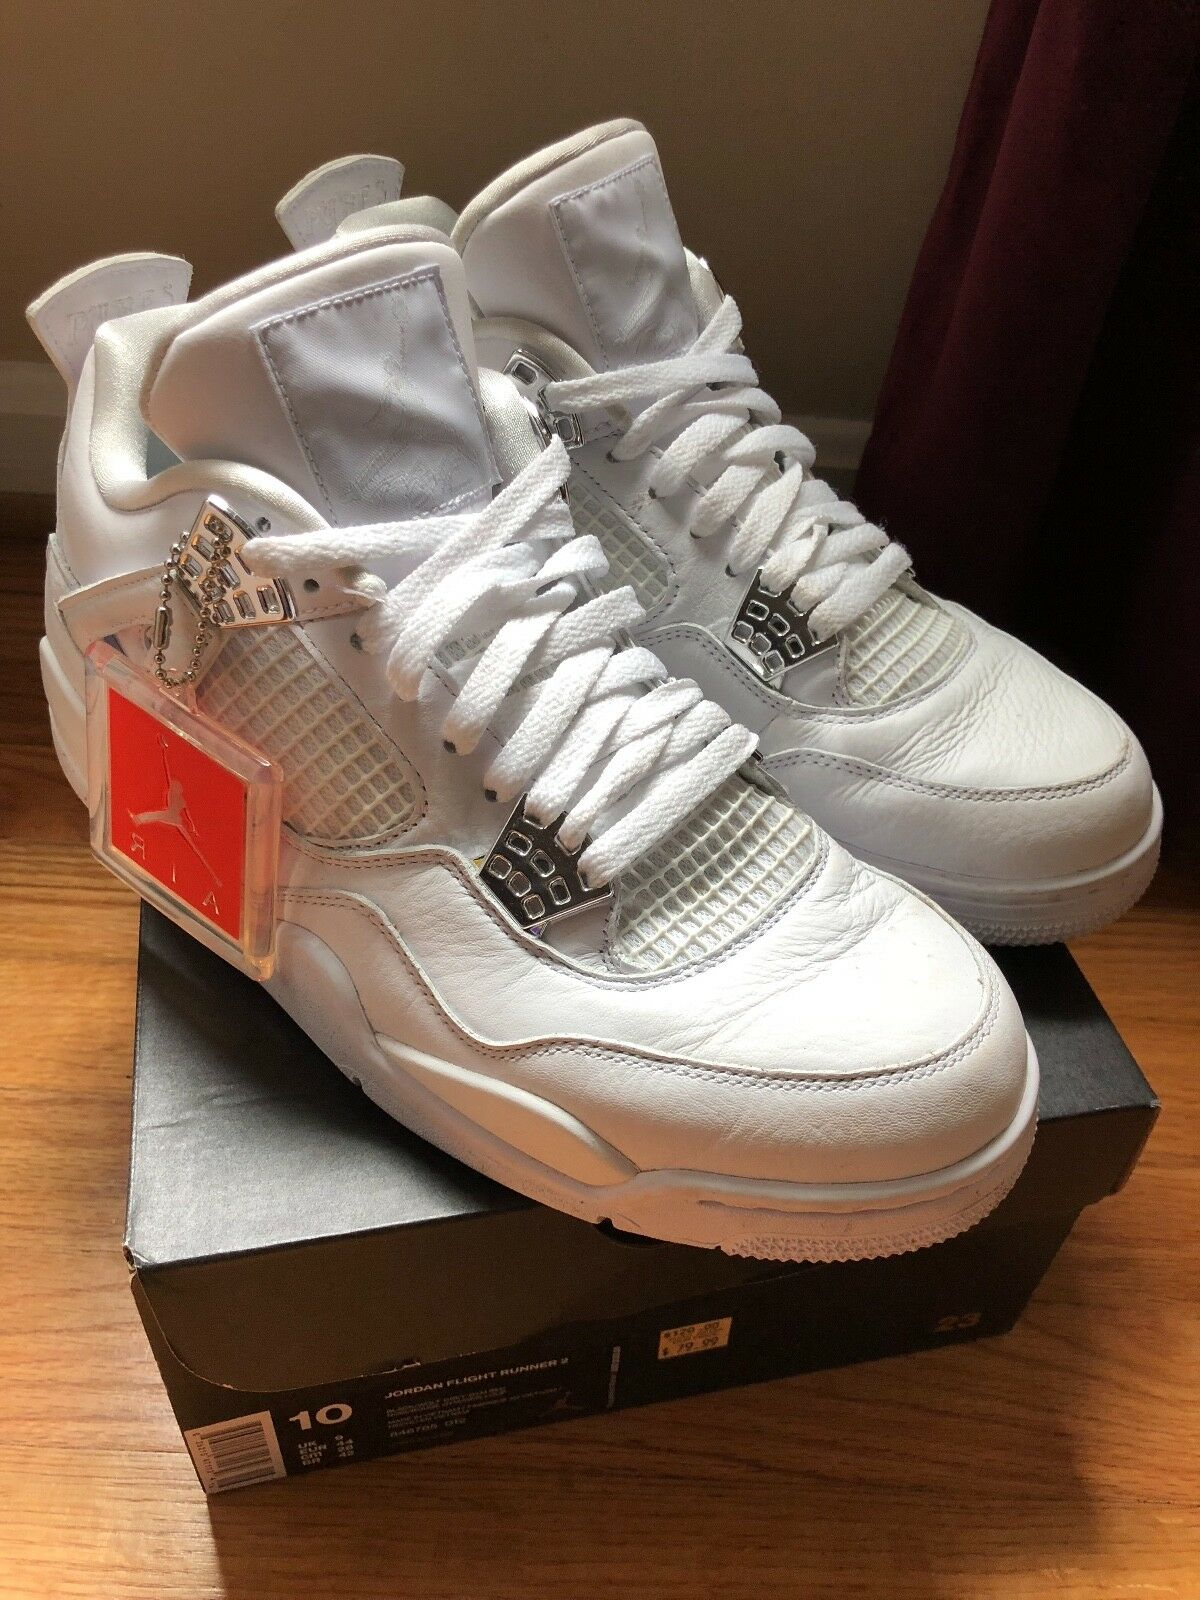 Air Jordan IV and V size 10. Pre owned from 2004 and 2005